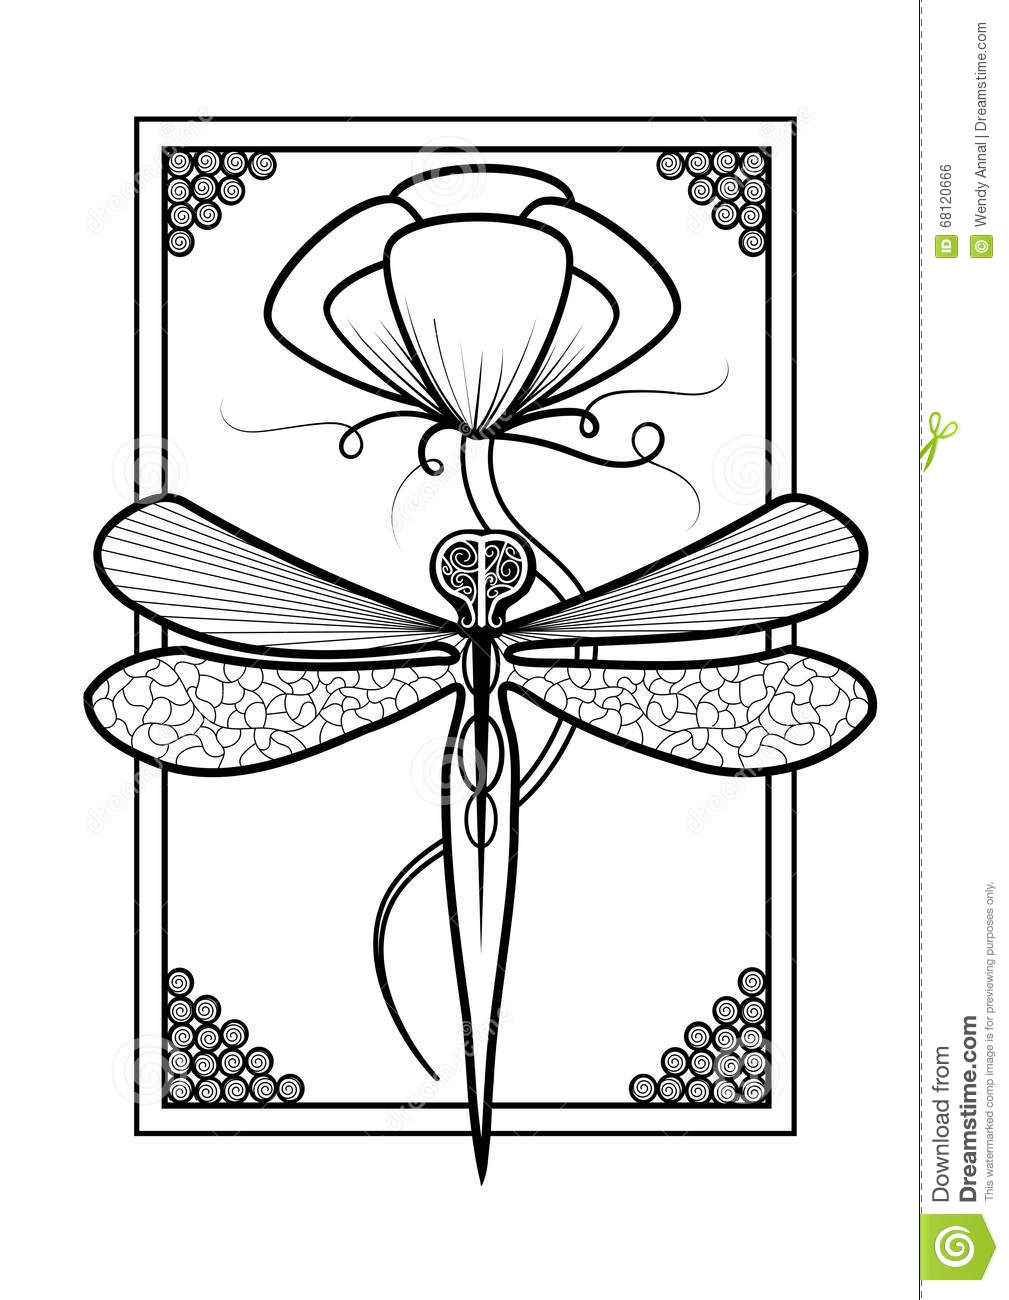 Elegant Dragonfly Adult Coloring Page Design Stock Illustration ...